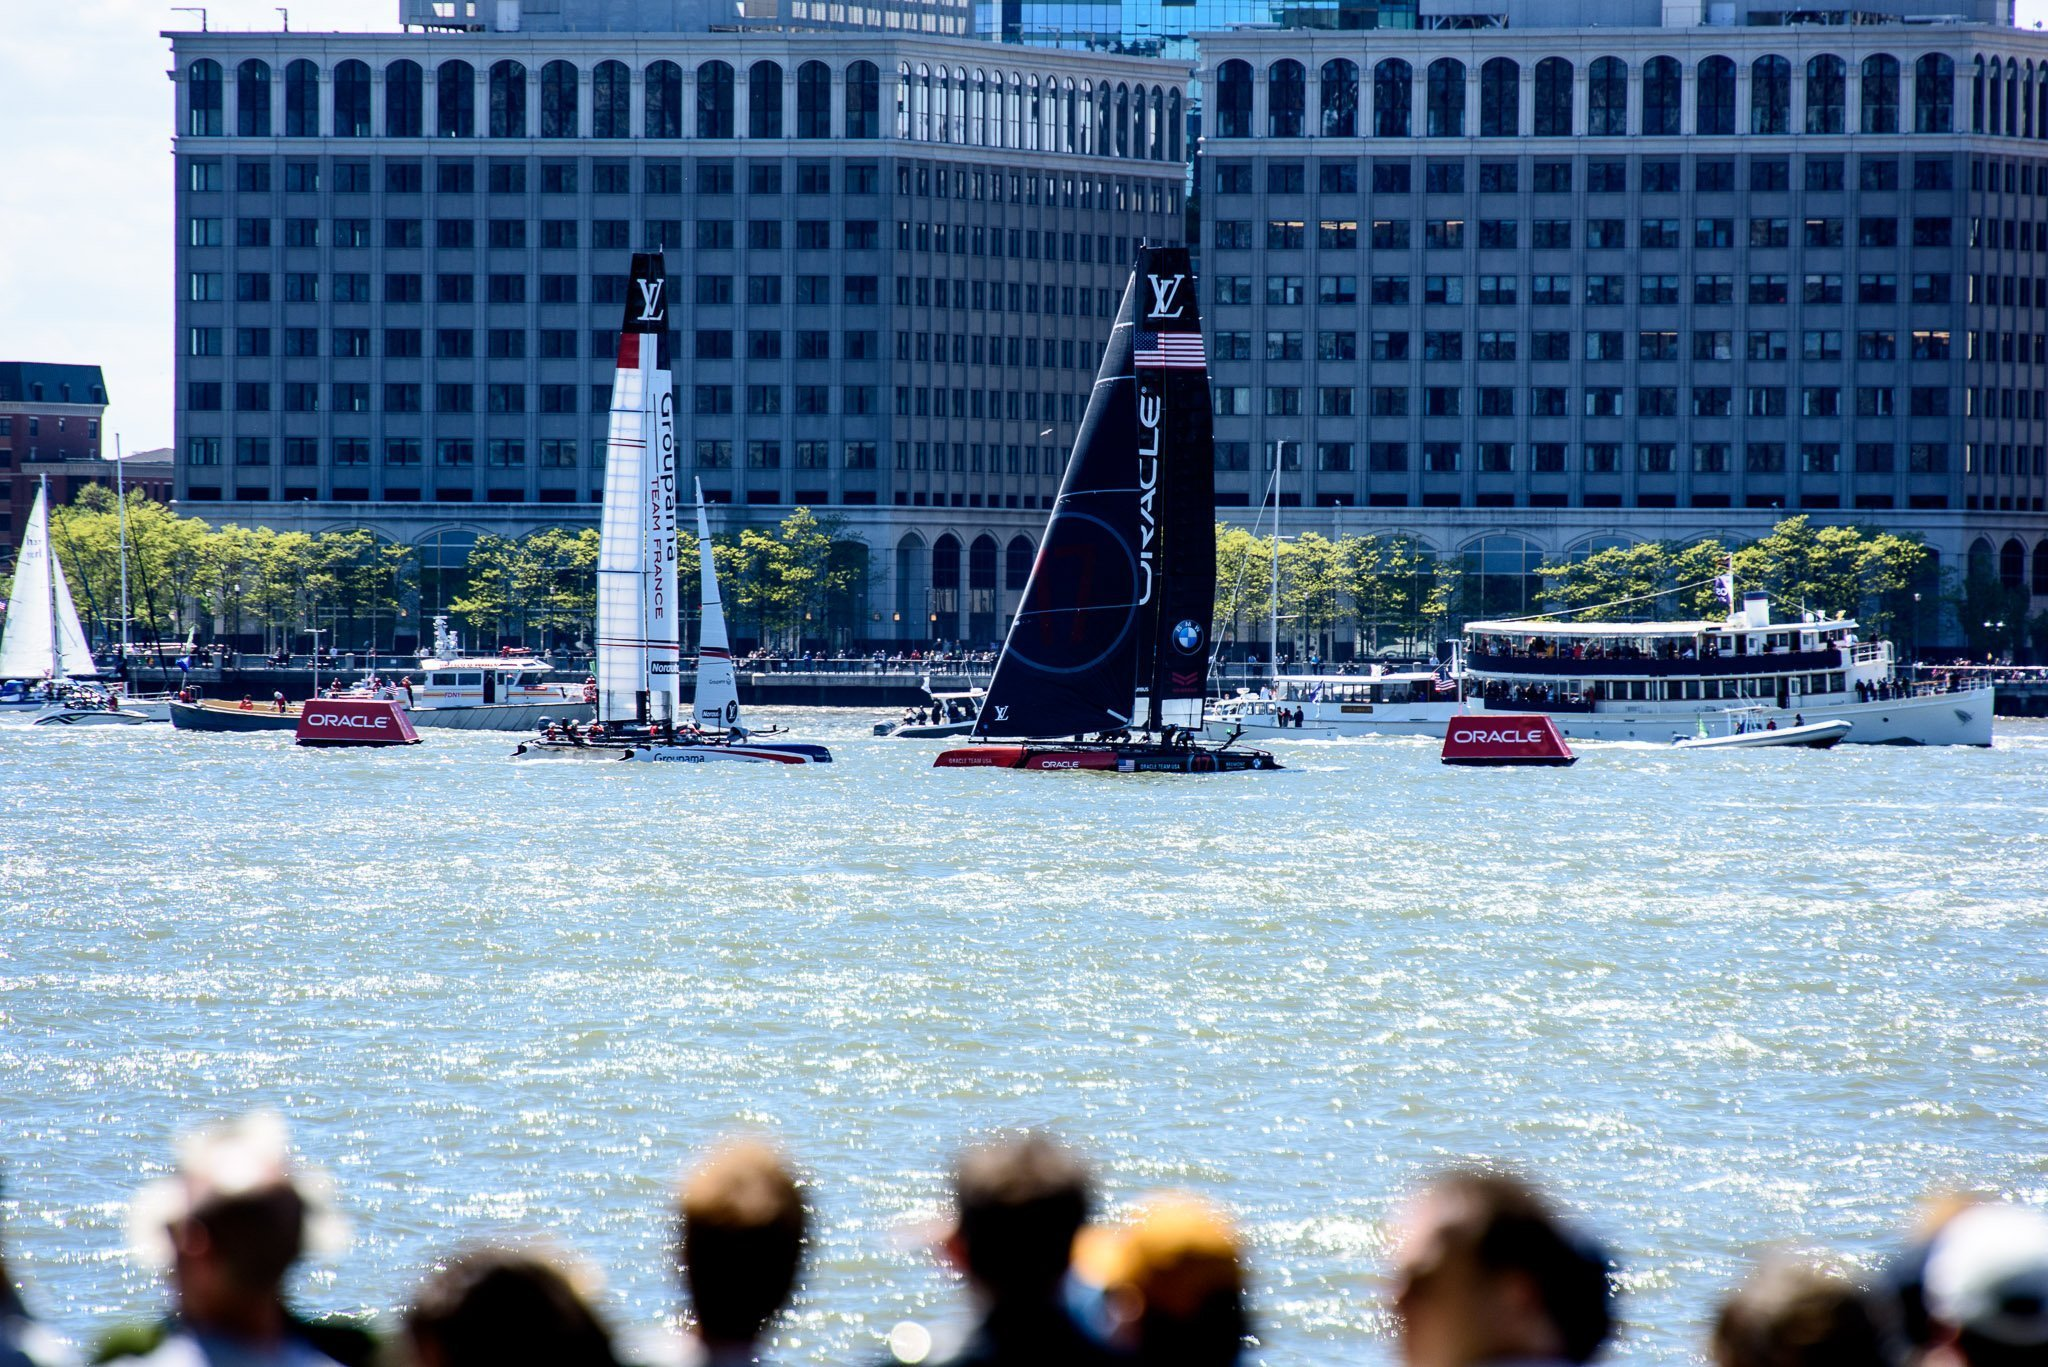 Oracle and team France America's Cup